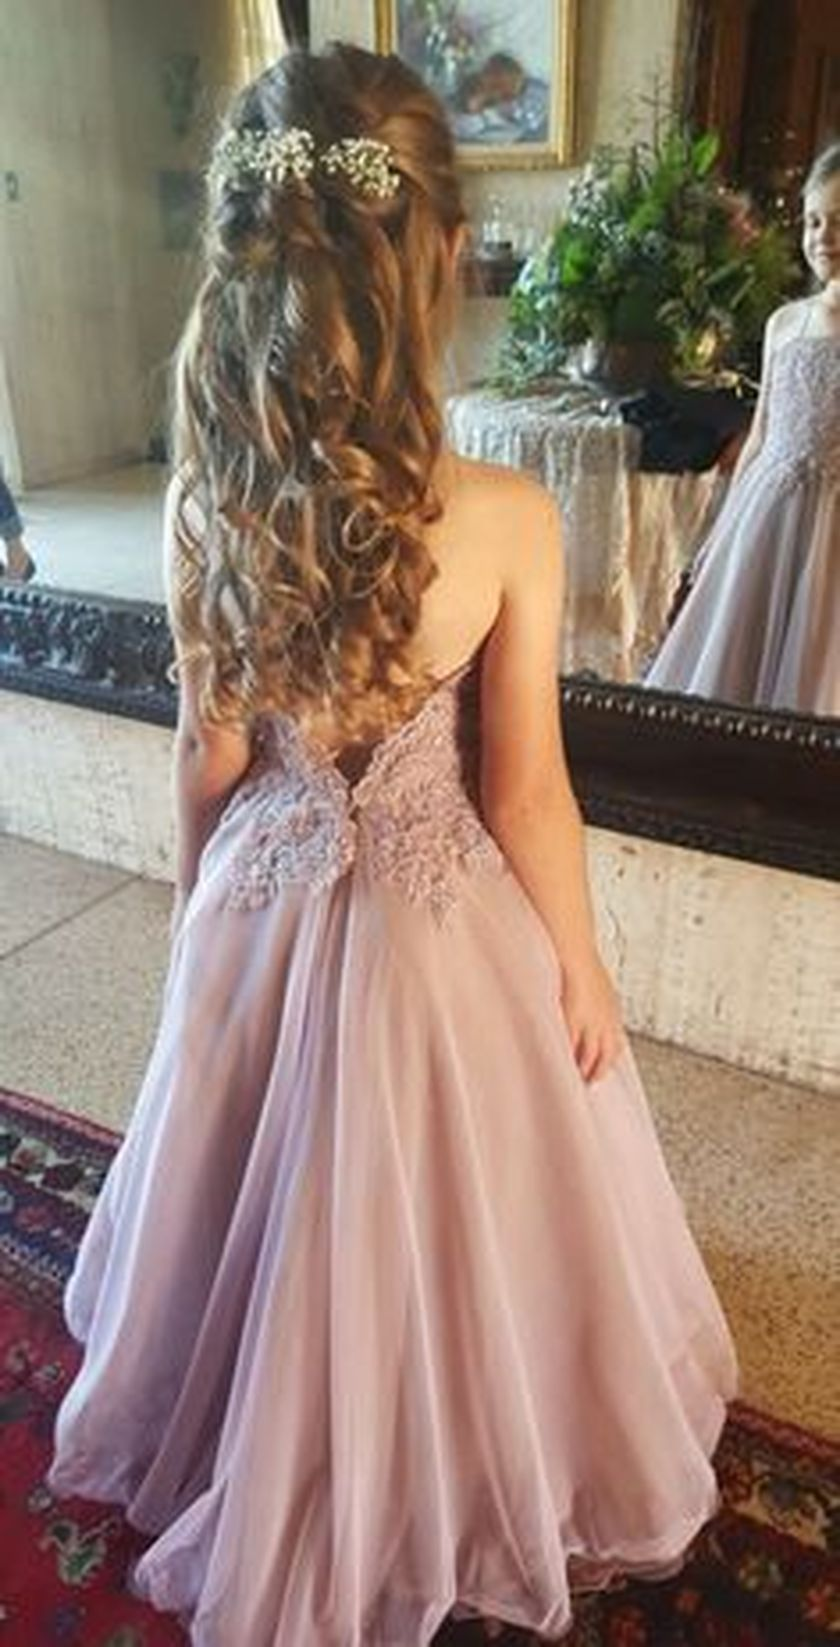 Cute bridesmaid dresses for little girls ideas 71